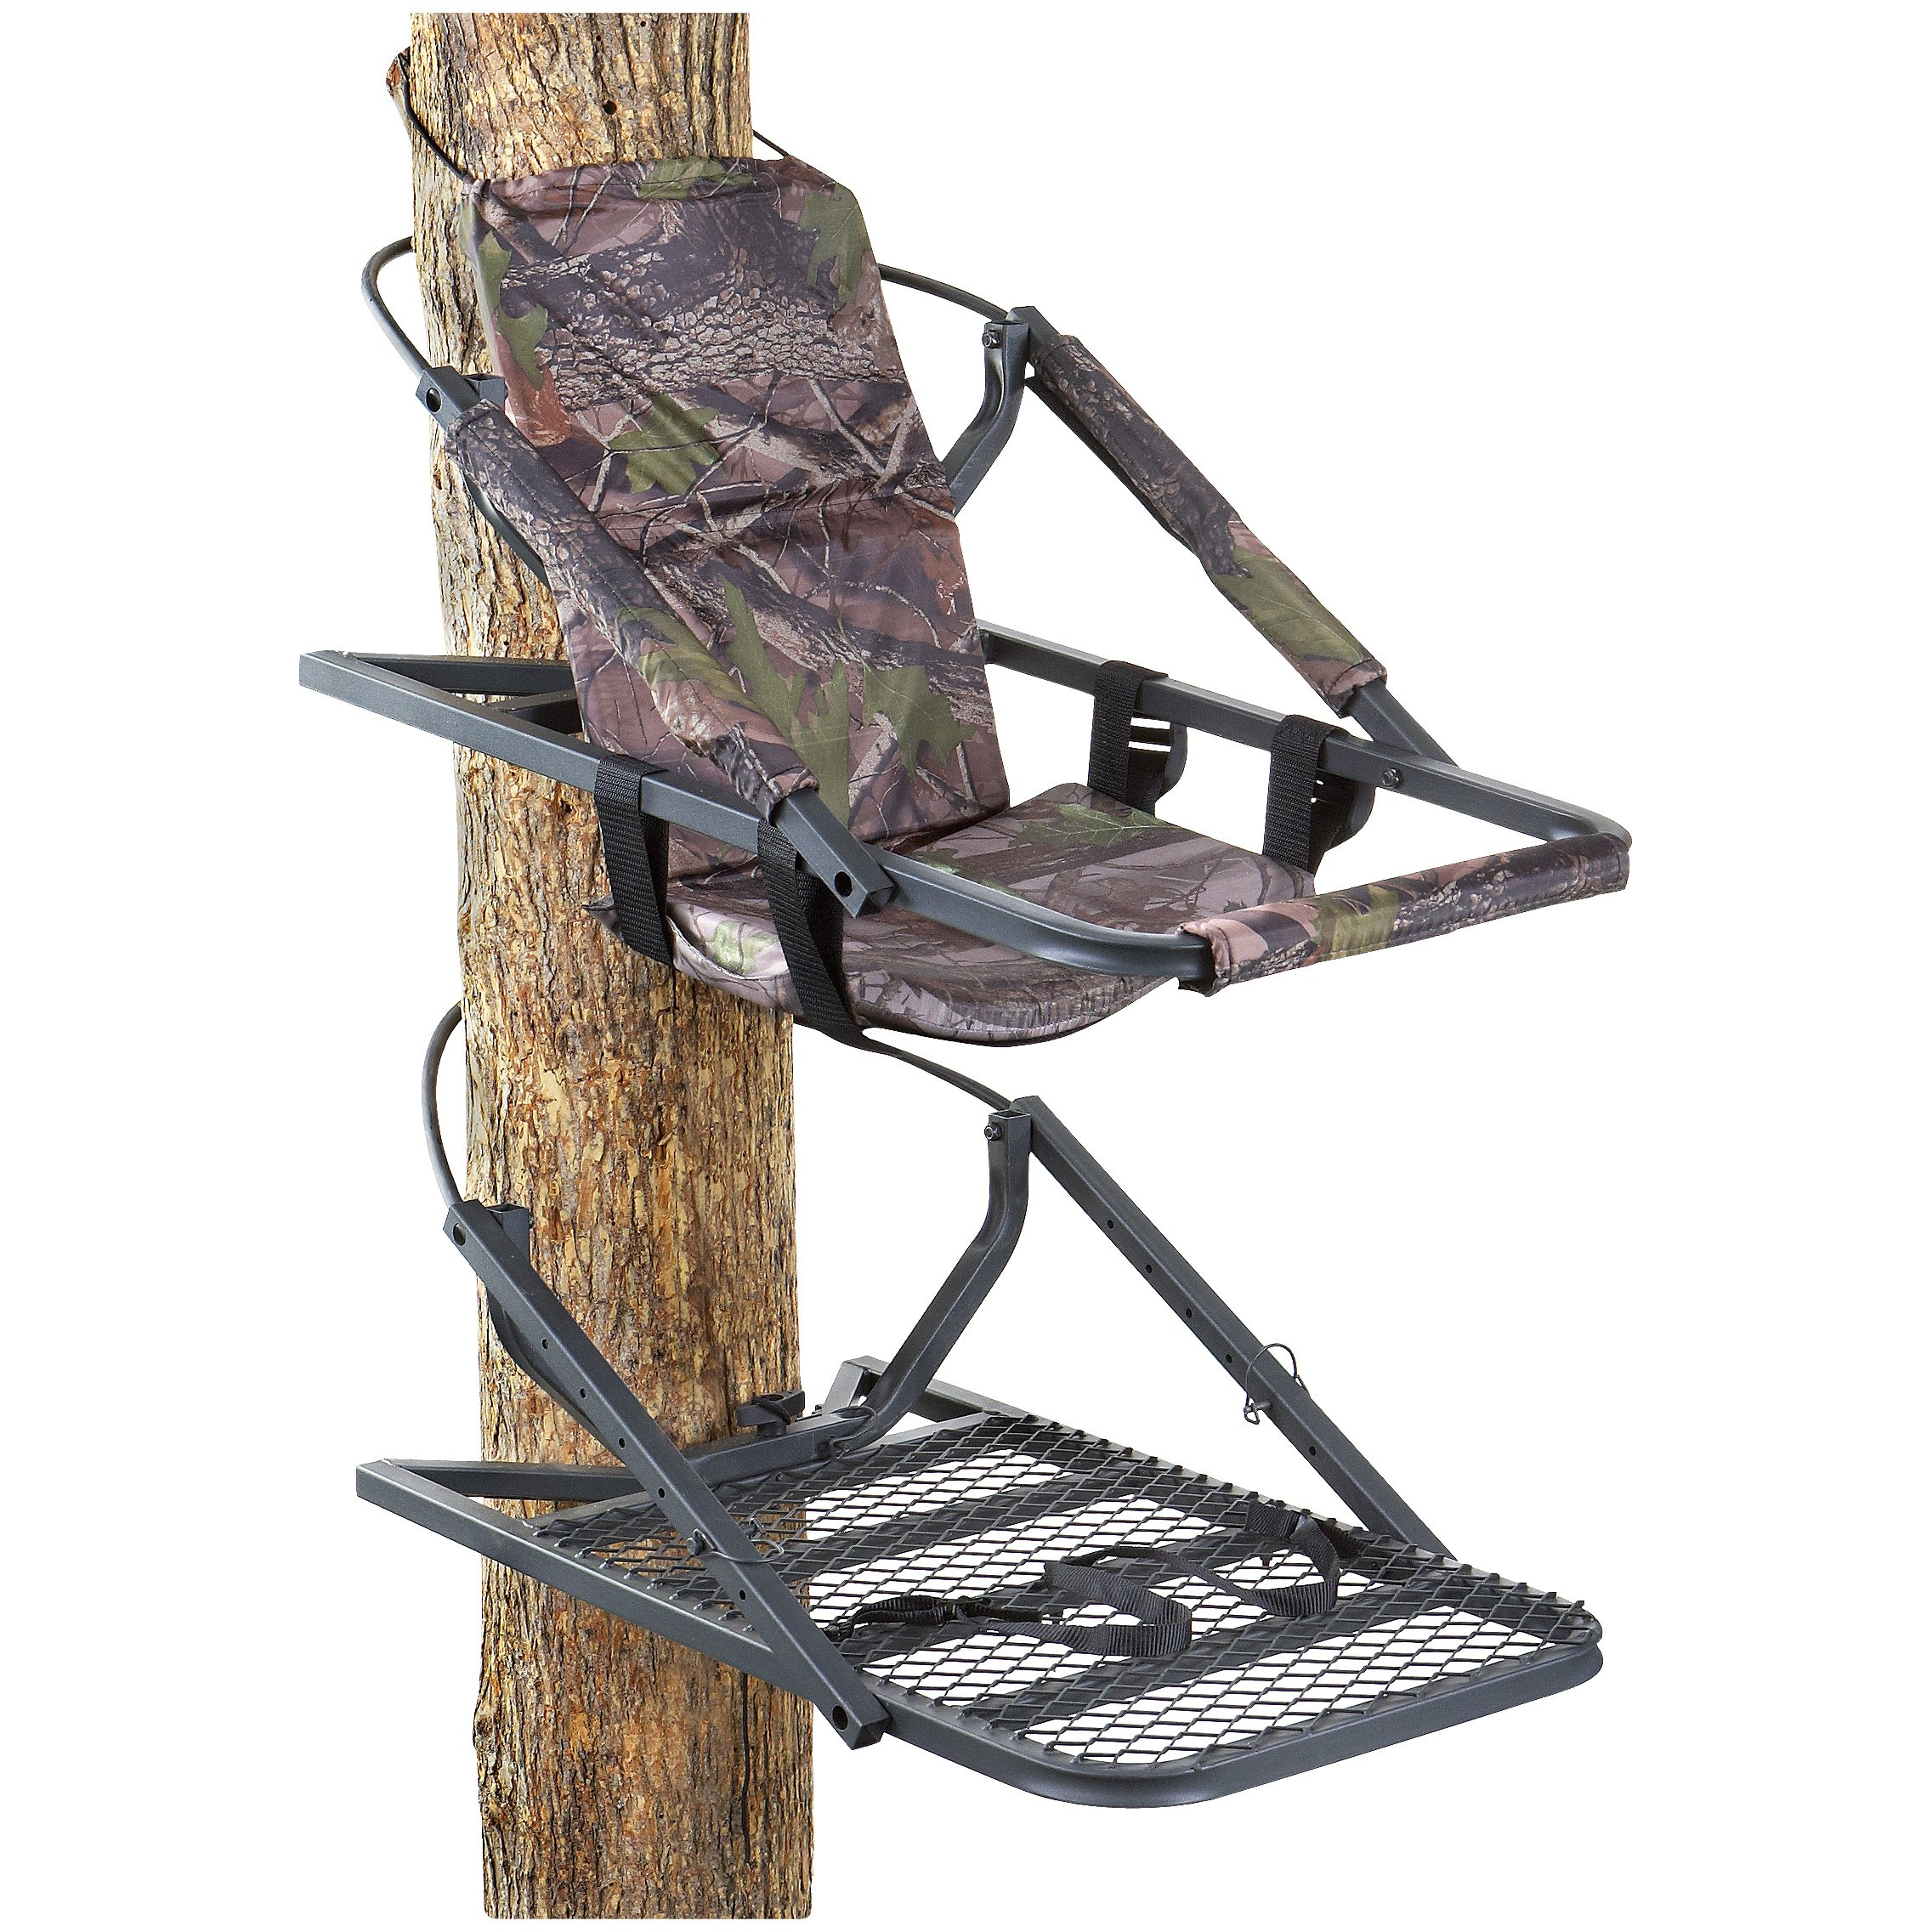 Guide Gear Extreme Deluxe Hunting Climber Tree Stand by Guide Gear